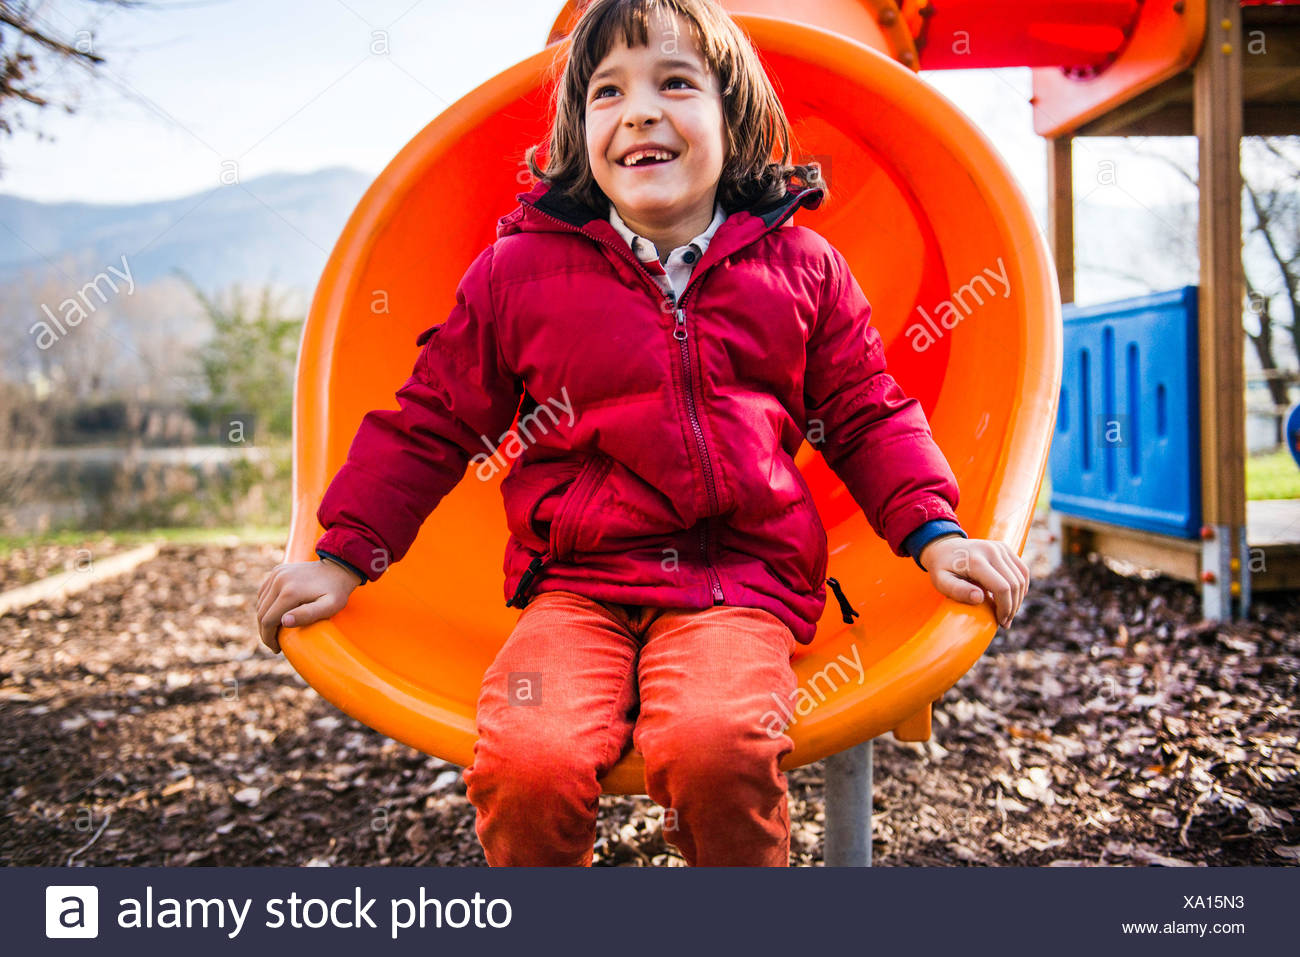 Boy sitting on orange playground slide - Stock Image